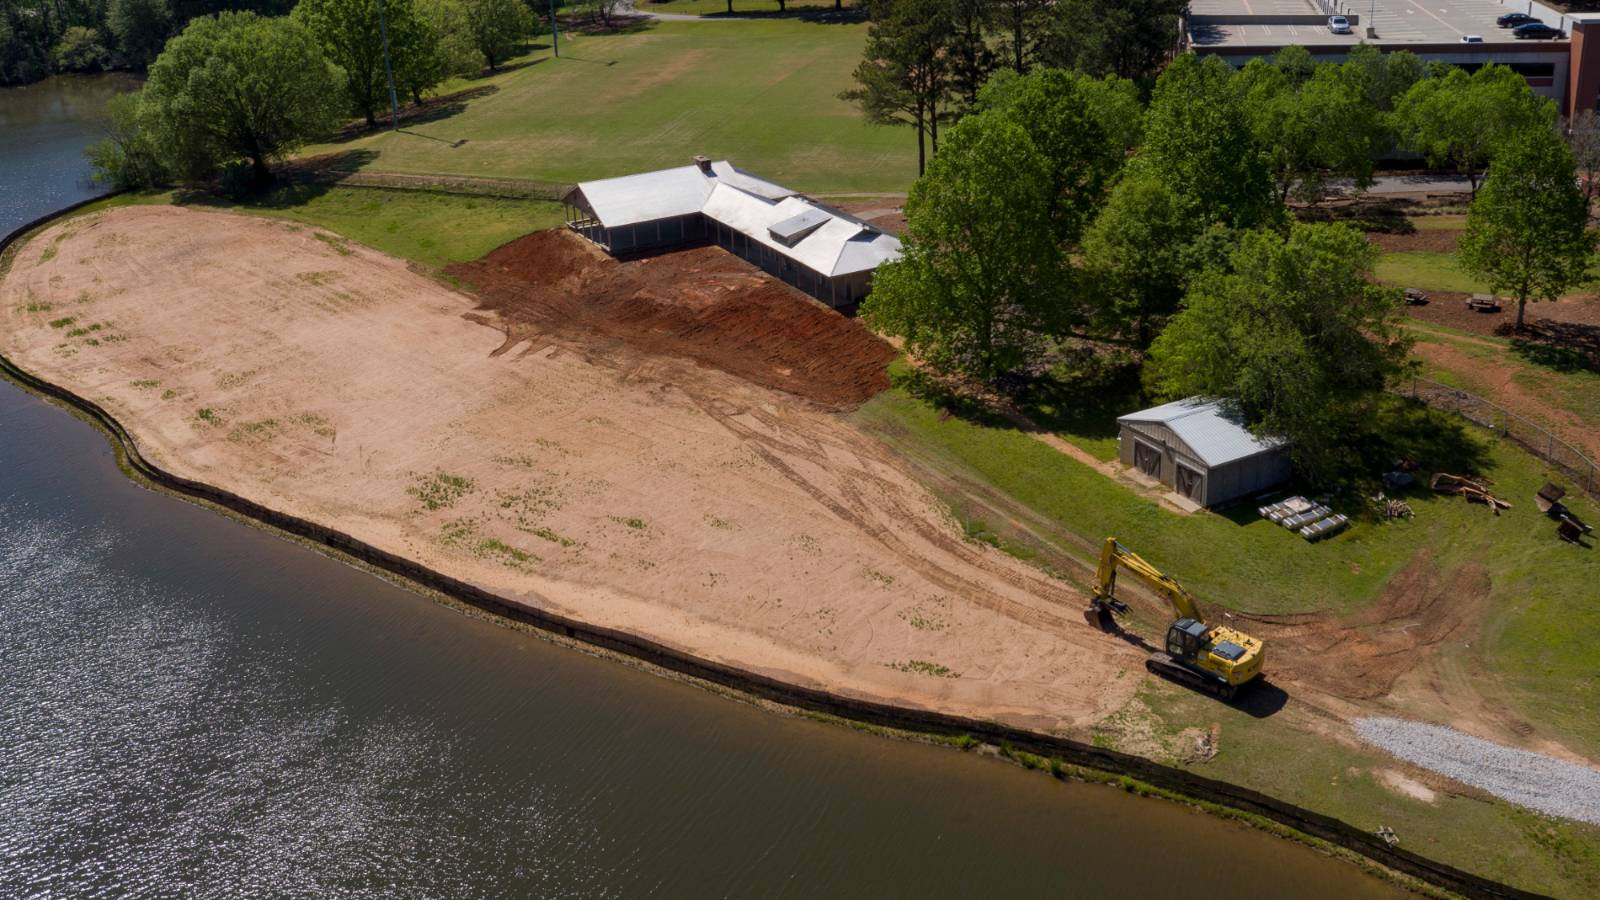 Aerial photo of a lakefront pavilion with construction equipment performing earthwork on the edge of the water